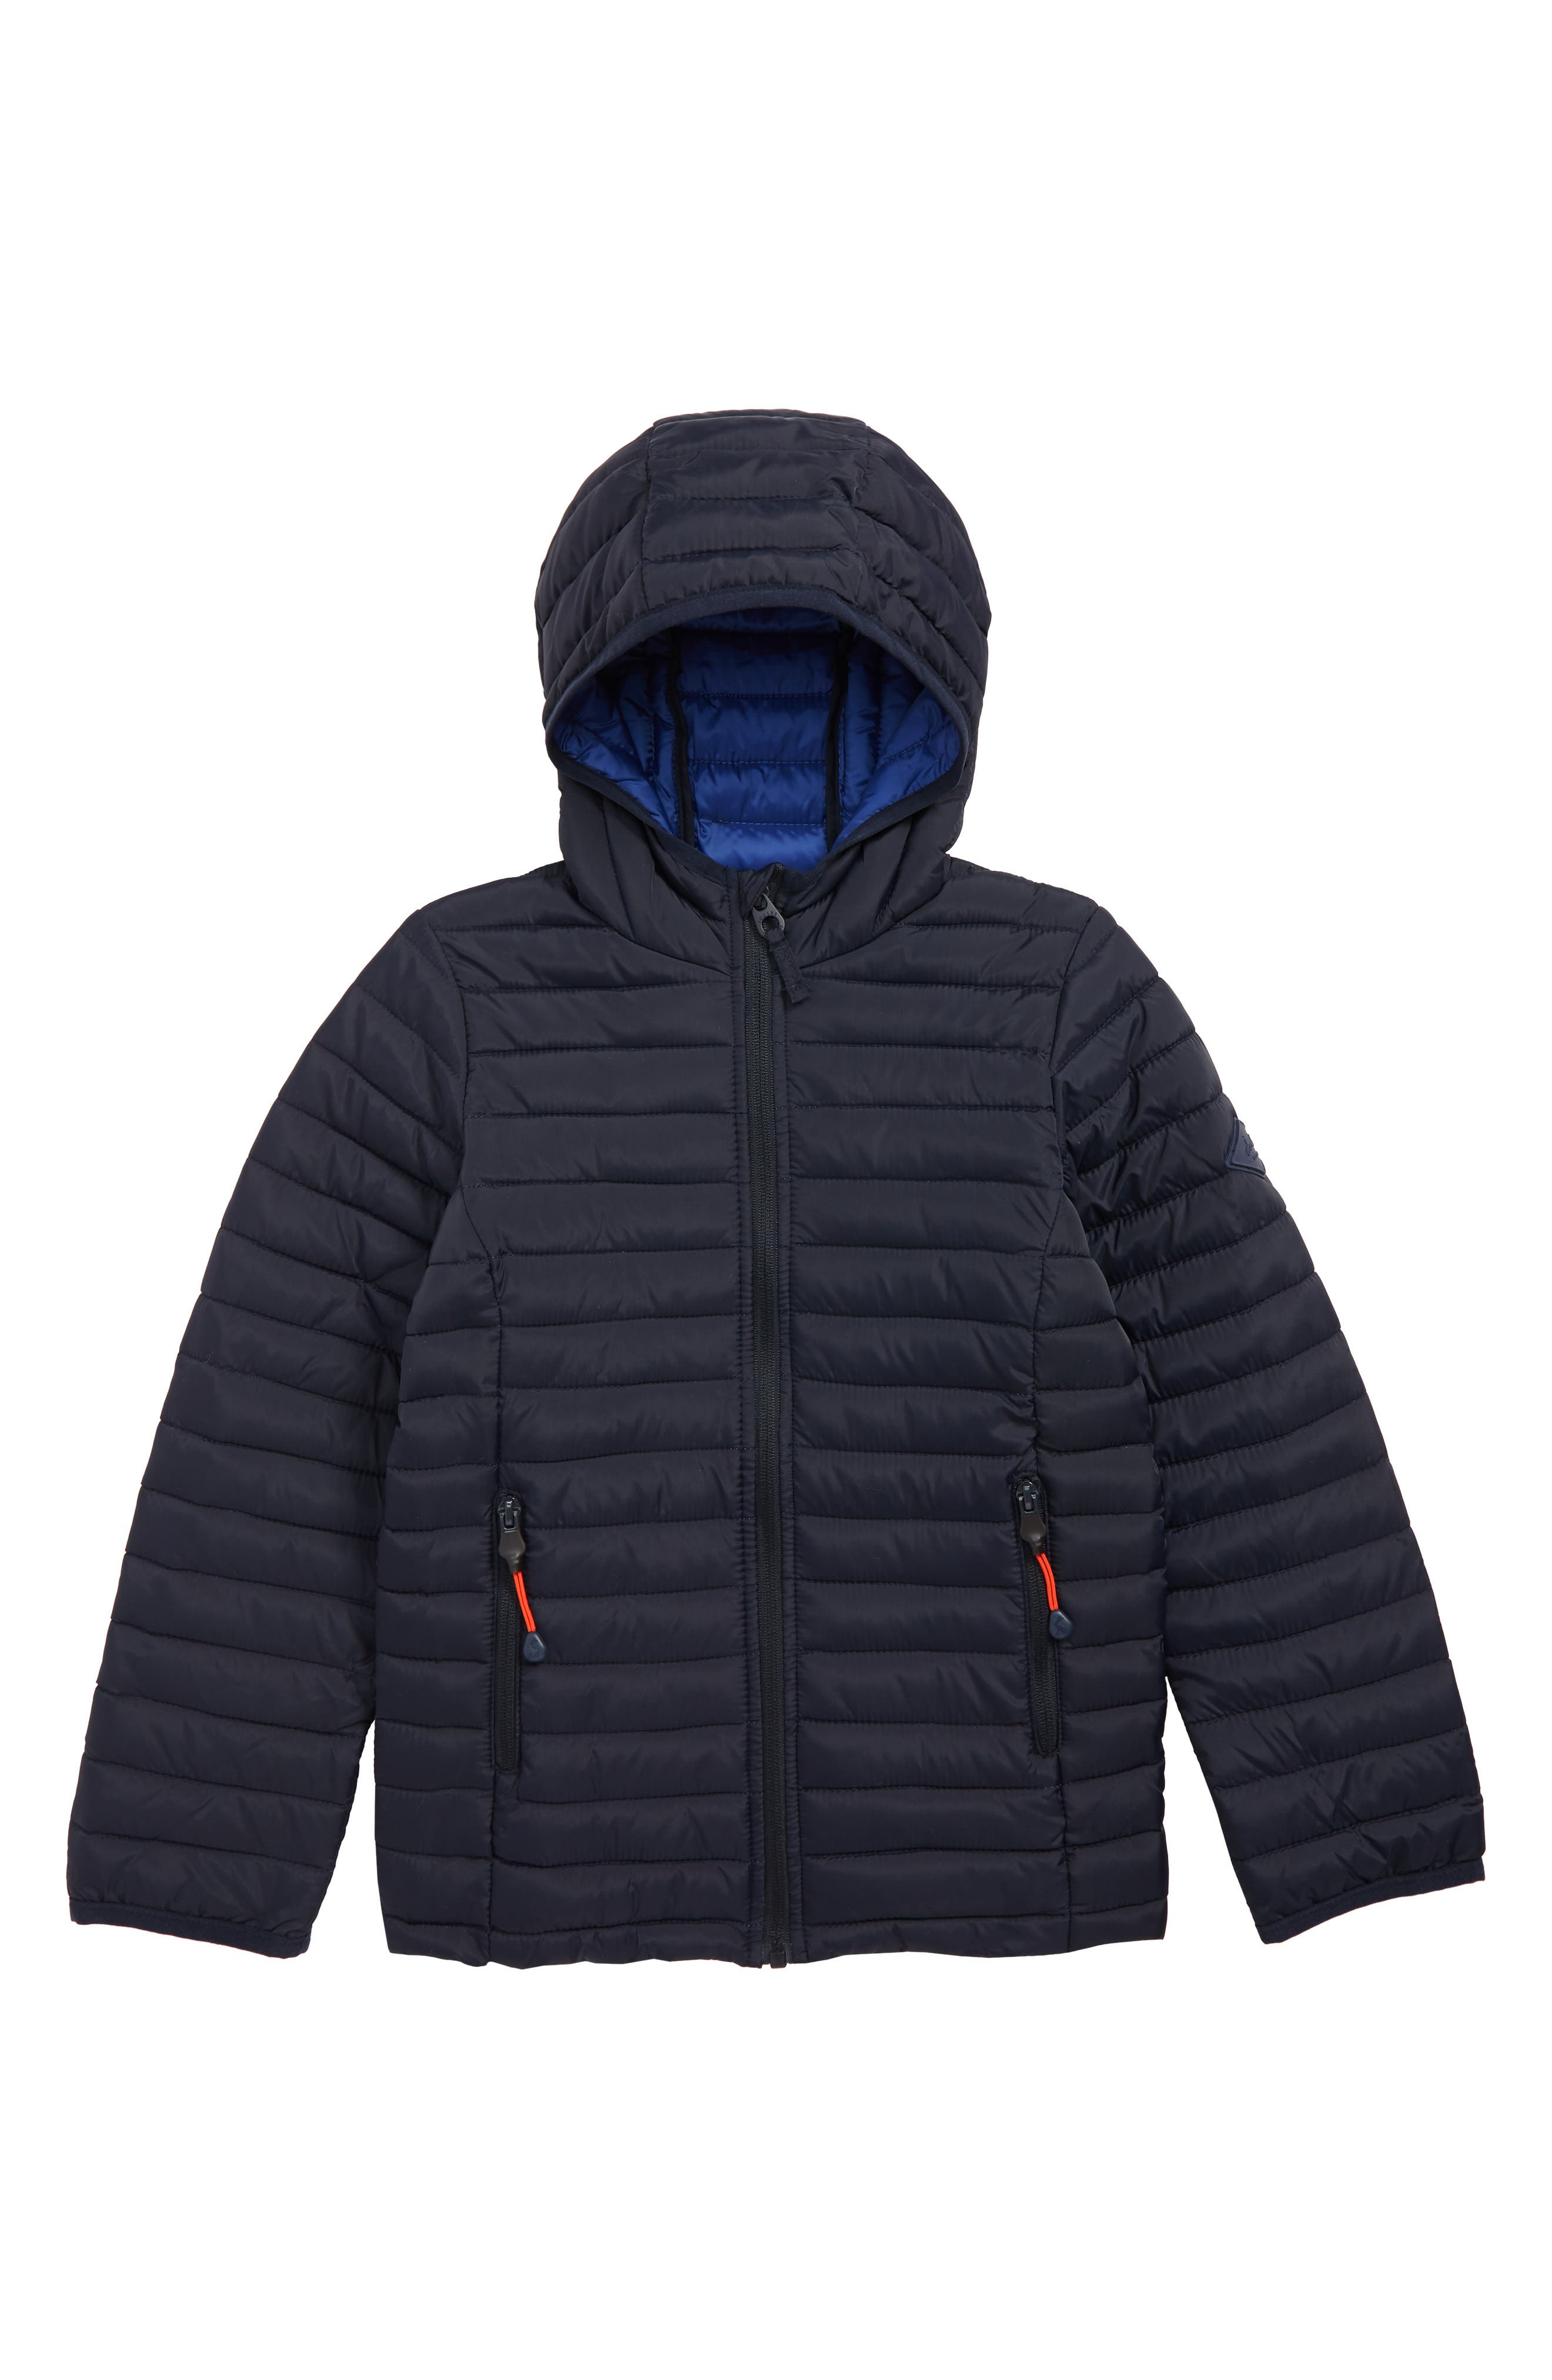 JOULES, Cairn Packable Puffer Coat, Main thumbnail 1, color, NAVY